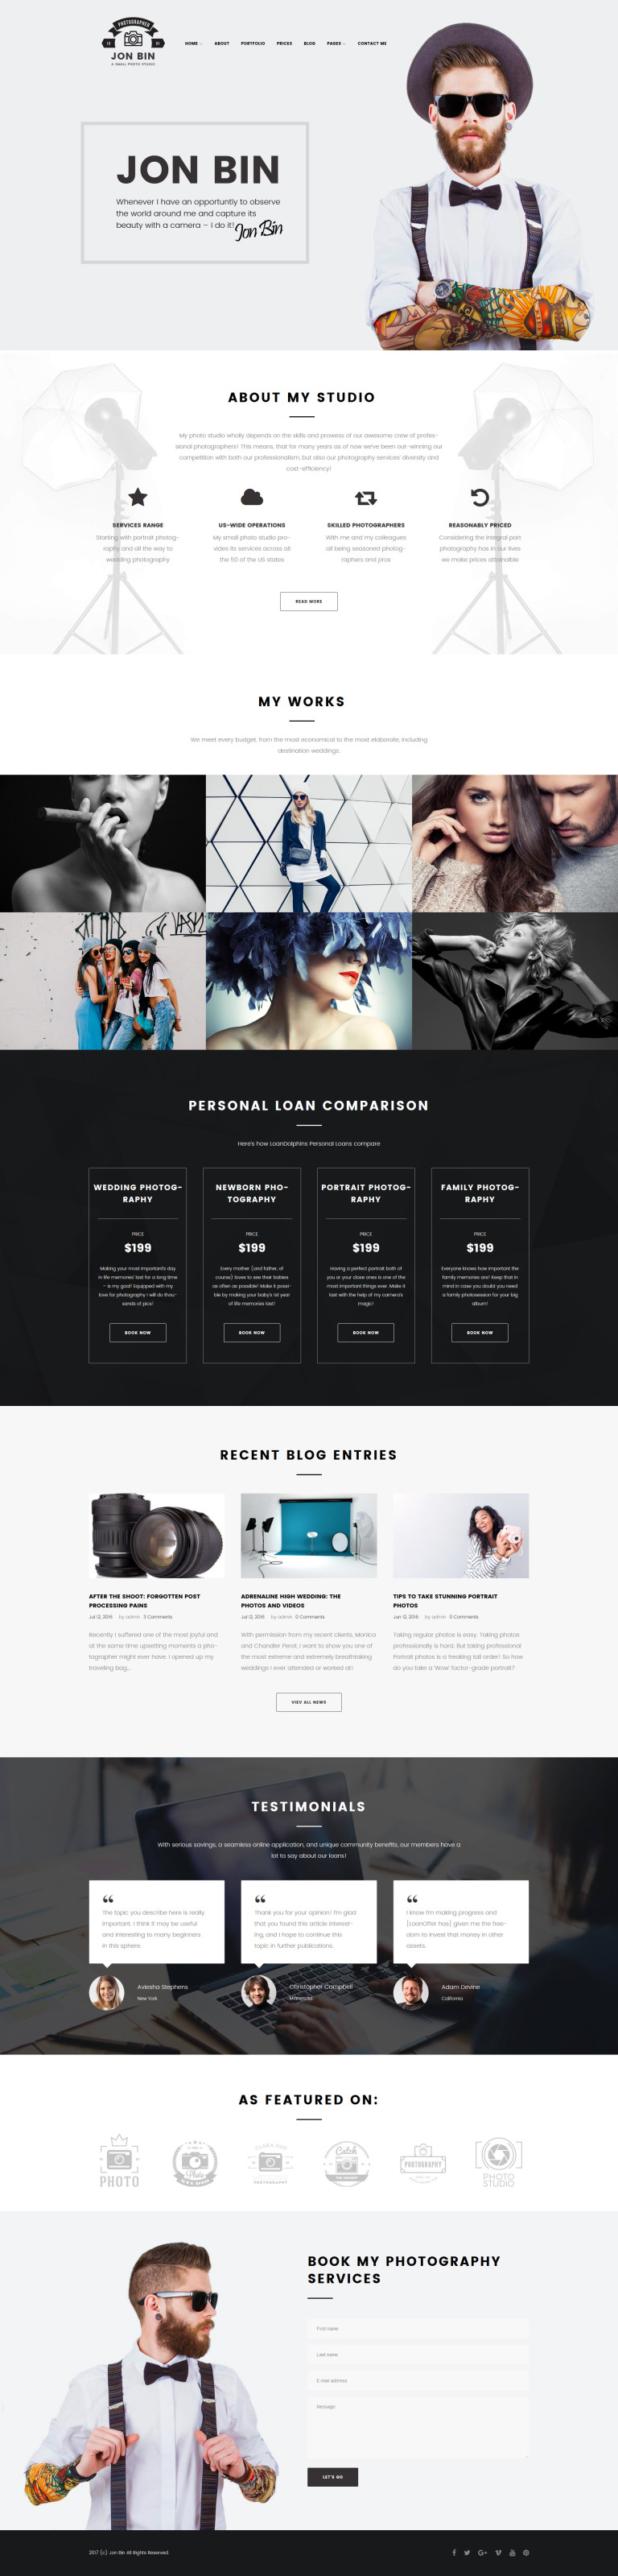 One Page Freelancer Photographer Portfolio WordPress Theme New Screenshots BIG